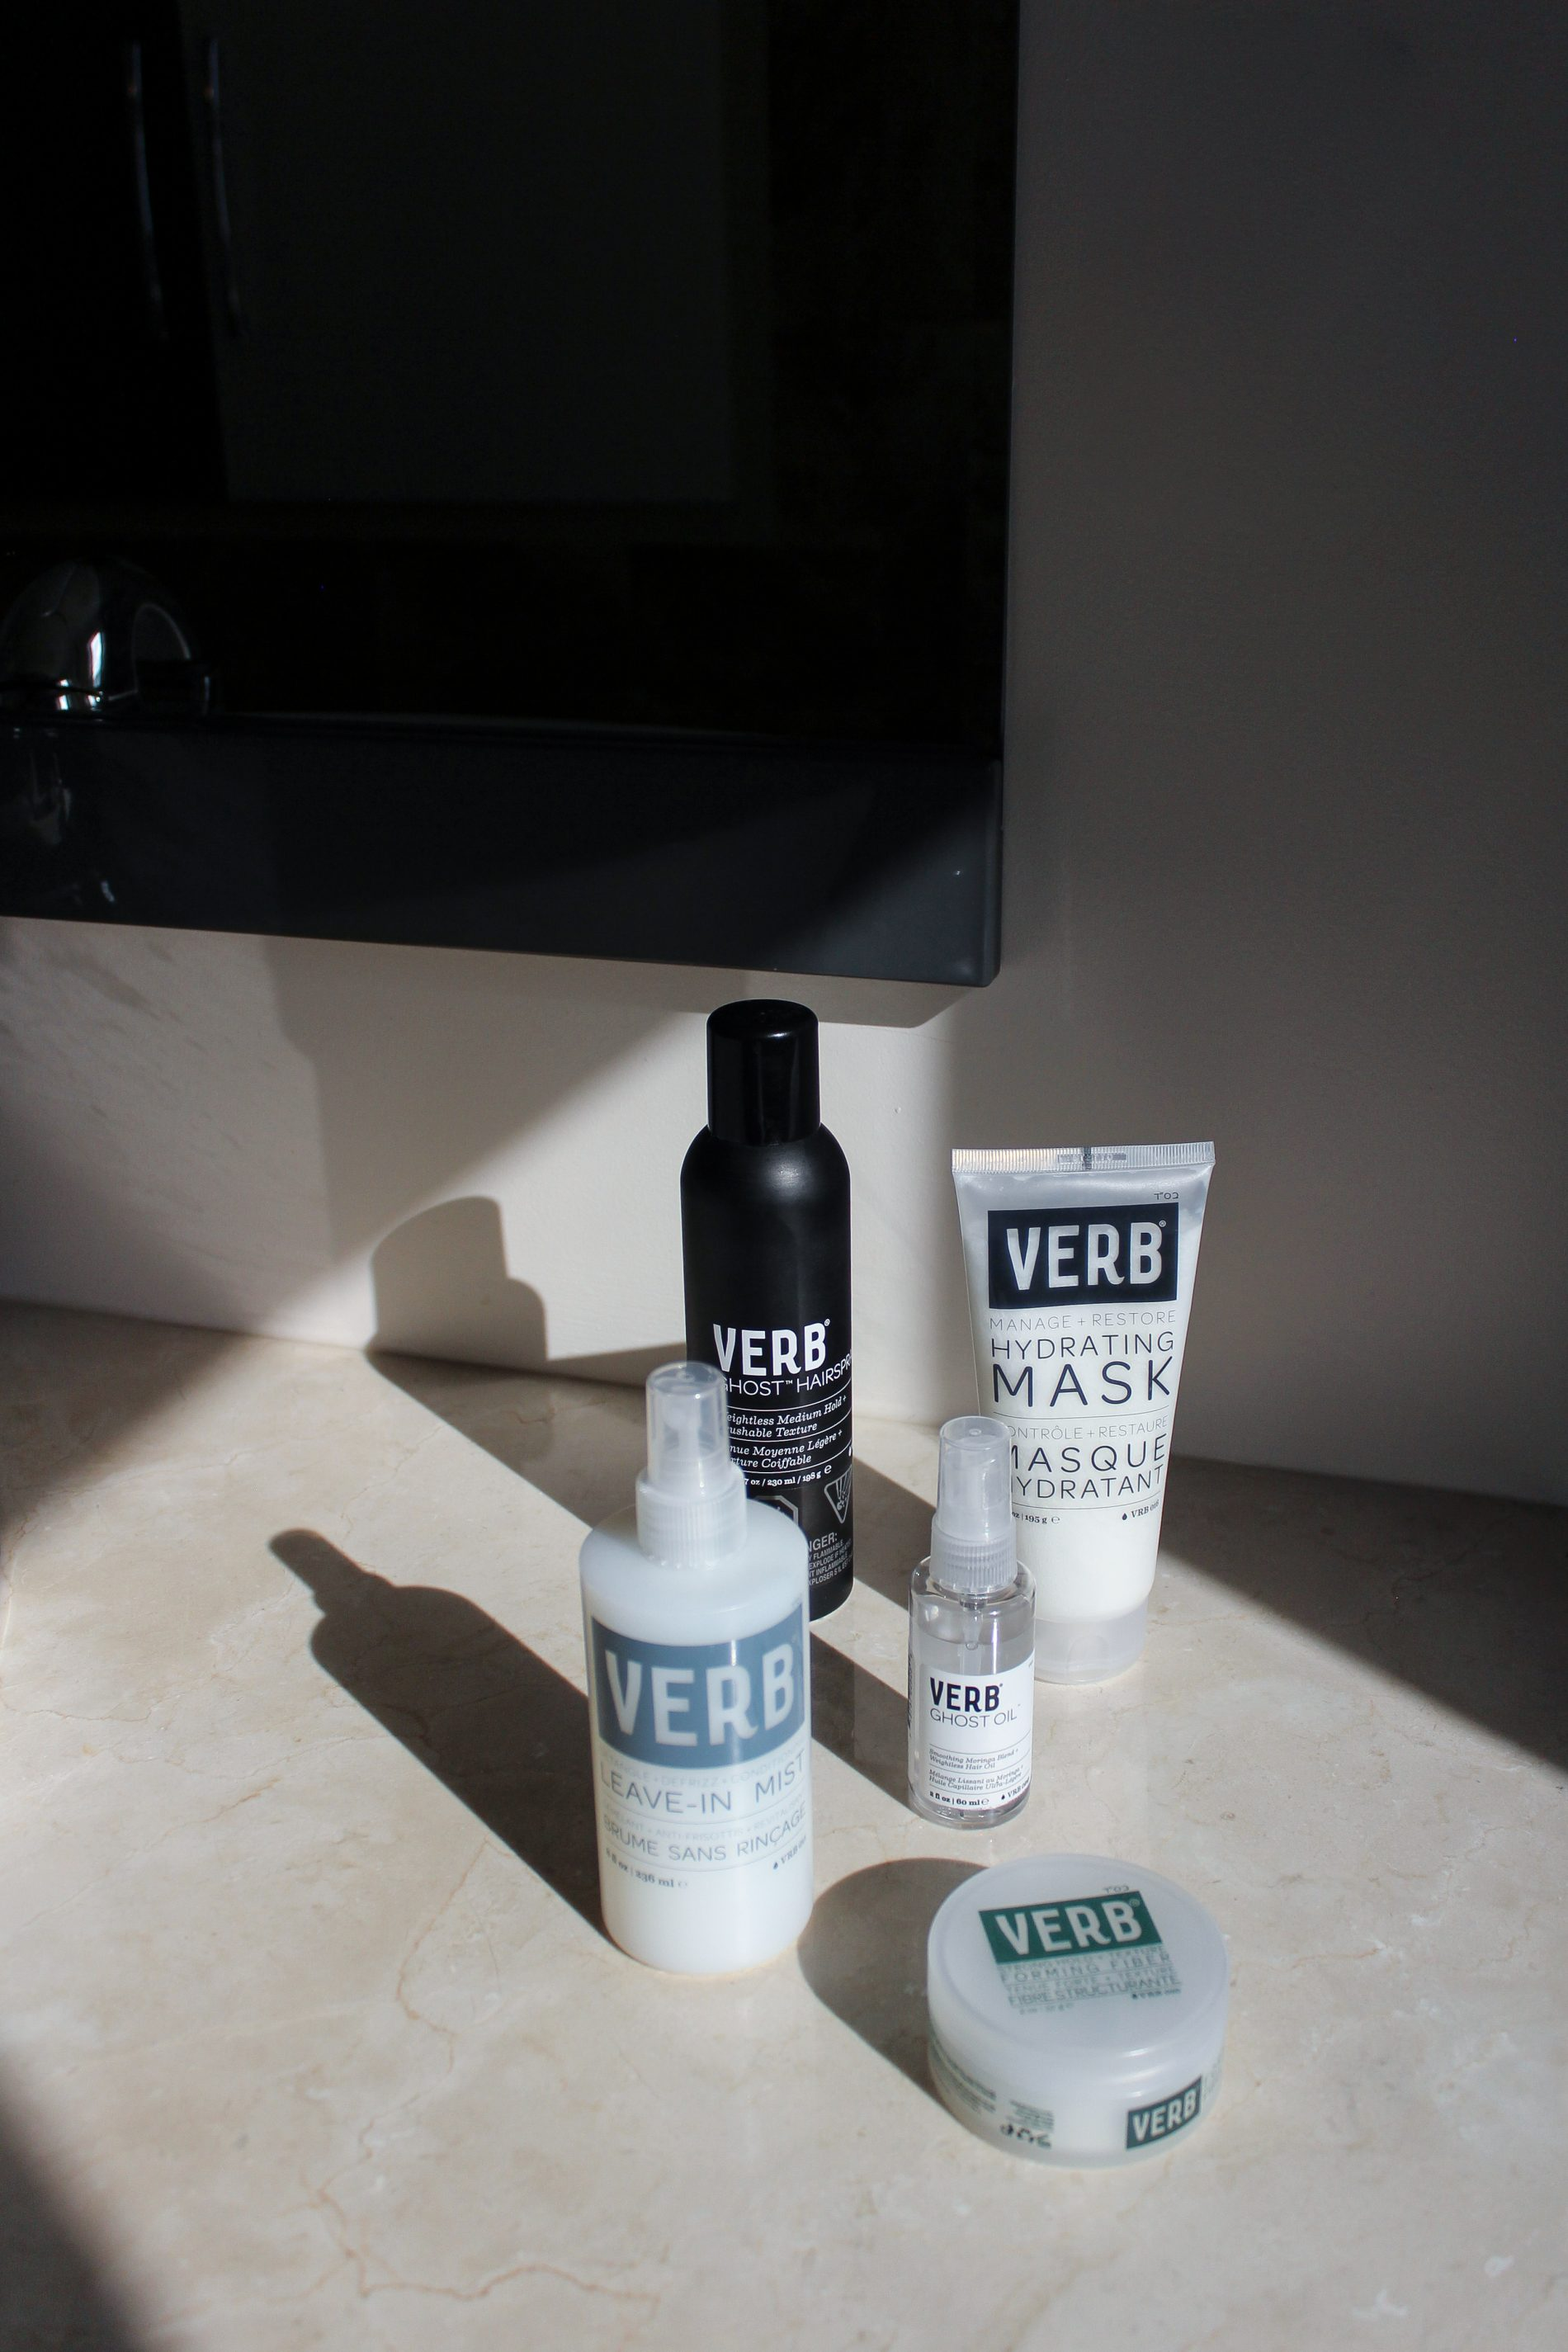 A bright light shining over a collection of hair products placed on a marble countertop